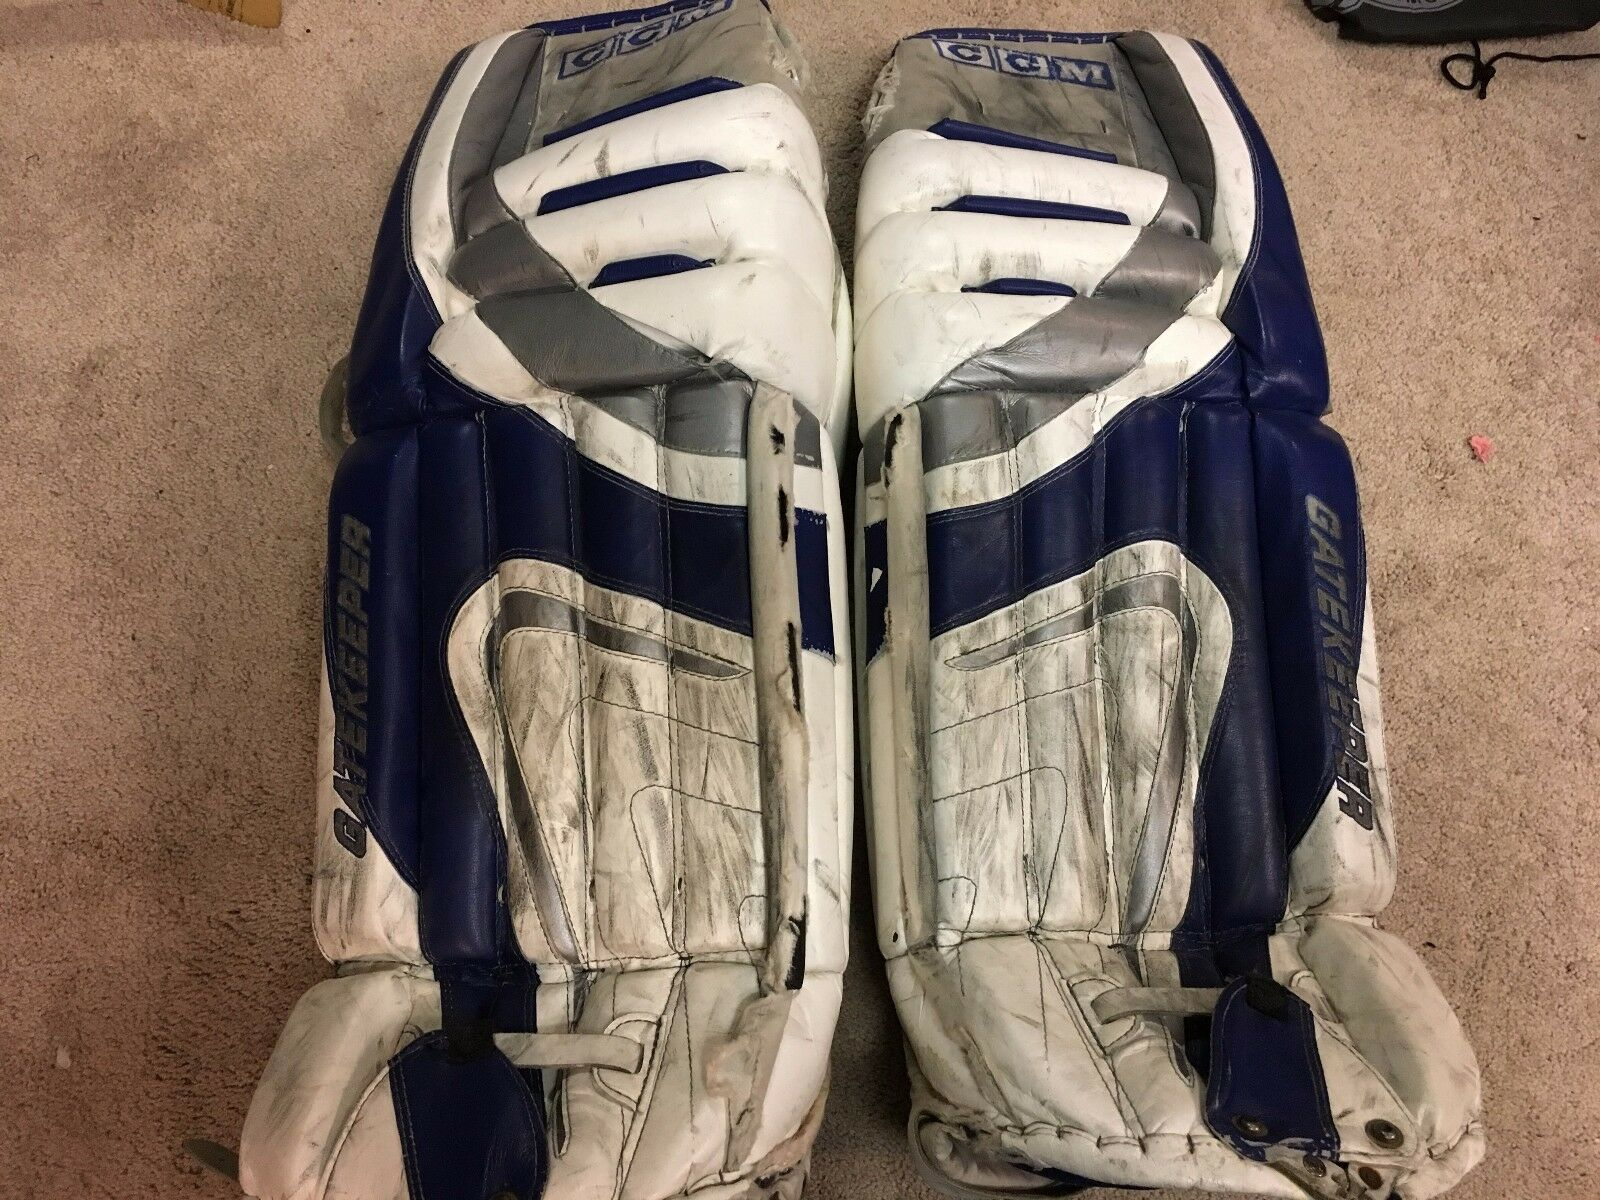 ED BELFOUR 05'06 Tgoldnto Maple Leafs NHL Game Worn Used Goalie Leg Pads COA